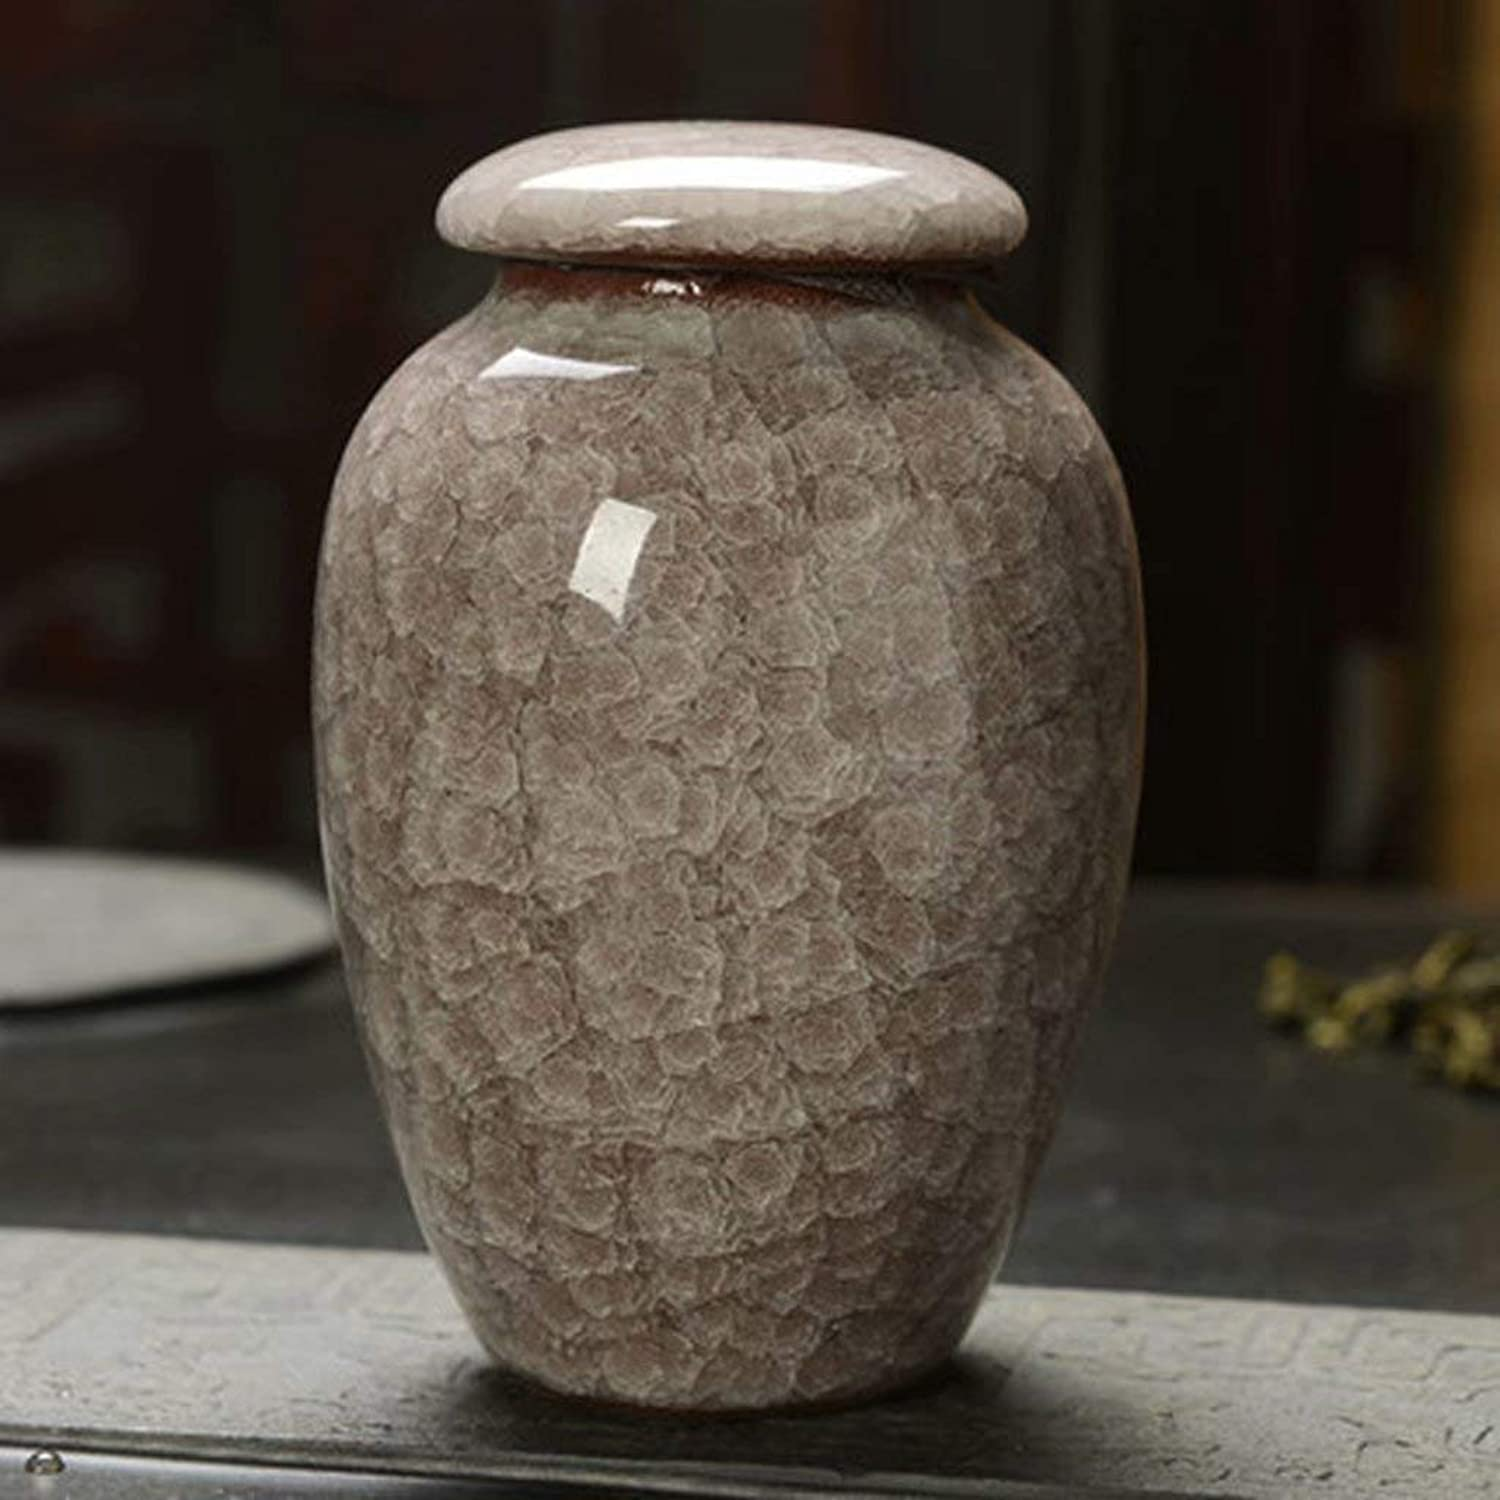 Full Size Classic Handmade Cremation Urn Made in The U.K by Traditionally Skilled Craftsmen. Elegant Design, Perfect for Adult Ashes.11.5  9  9cm